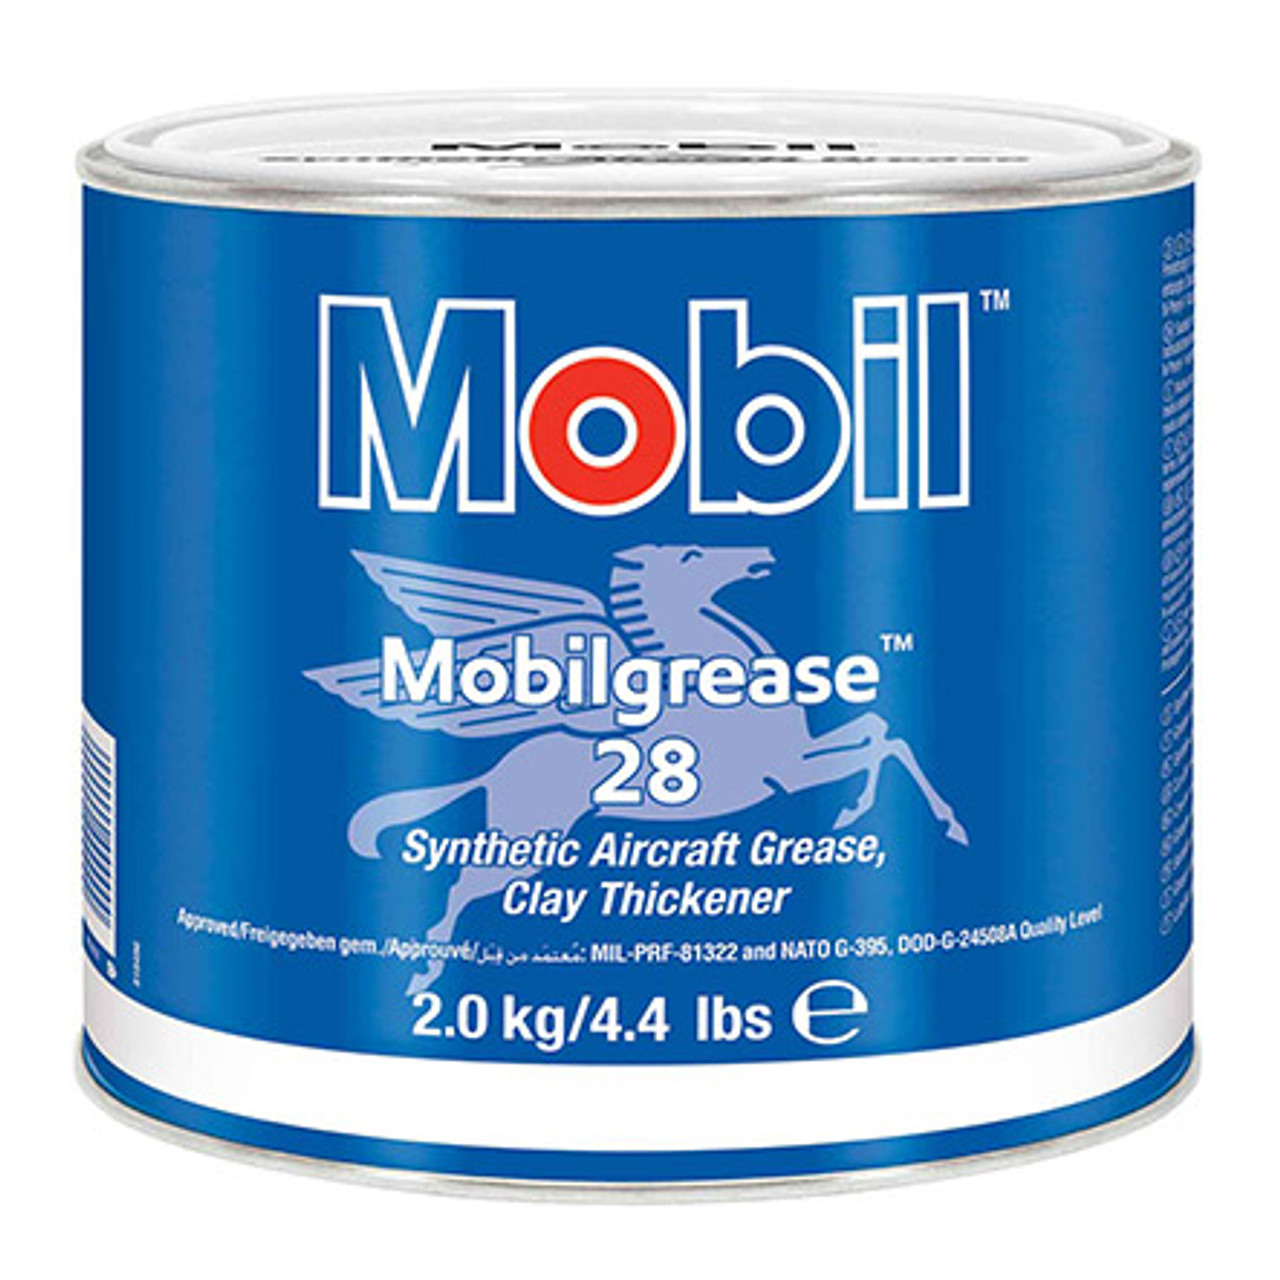 Exxon Mobil Mobilgrease 28 Red MIL-PRF-81322G Spec Synthetic Aviation Grease - 1 can x  (4.4 lb ) Can - Part#: 103272 by Exxon Mobil Mobil grease 28 is a supreme performance, wide-temperature, antiwear grease designed to combine the unique features of a polyalphaolefin (PAO) synthetic base fluid with an organo-clay (non-soap) thickener. Its consistency is between an NLGI No. 1 and No. 2 grease. It offers outstanding performance over a wide temperature range. The wax-free nature of the synthetic base fluid, together with its high viscosity index compared to mineral oils, provide excellent low temperature pumpability, very low starting and running torque, and can help reduce operating temperatures in the load zone of rolling element bearings. The clay thickener gives Mobil grease 28 a high dropping point value of around 300°C, which provides excellent stability at high temperatures. Mobil grease 28 resists water washing, provides superior load-carrying ability, reduces frictional drag, and prevents excessive wear. Tests show that Mobil grease 28 lubricates effectively rolling element bearings under conditions of high speeds and temperatures. Mobil grease 28 has also shown excellent ability to lubricate heavily loaded sliding mechanisms, such as wing flap screw jacks.  For more than 30 years, Mobil grease 28 has been the multi-purpose grease of choice for military and related aviation applications, worldwide.  A particular requirement of aviation greases is the need to resist high temperature stresses, while providing excellent starting and low torque at low-temperature. To meet this combination of needs ExxonMobil product formulation scientists chose synthetic hydrocarbon base oils for Mobil grease 28 because of their low volatility, exceptional thermal/oxidative resistance, and superb low-temperature capability. Formulators chose specific thickener chemistry and a proprietary additive combination which helps maximize the benefits of the synthetic base oils.  Mobil gr